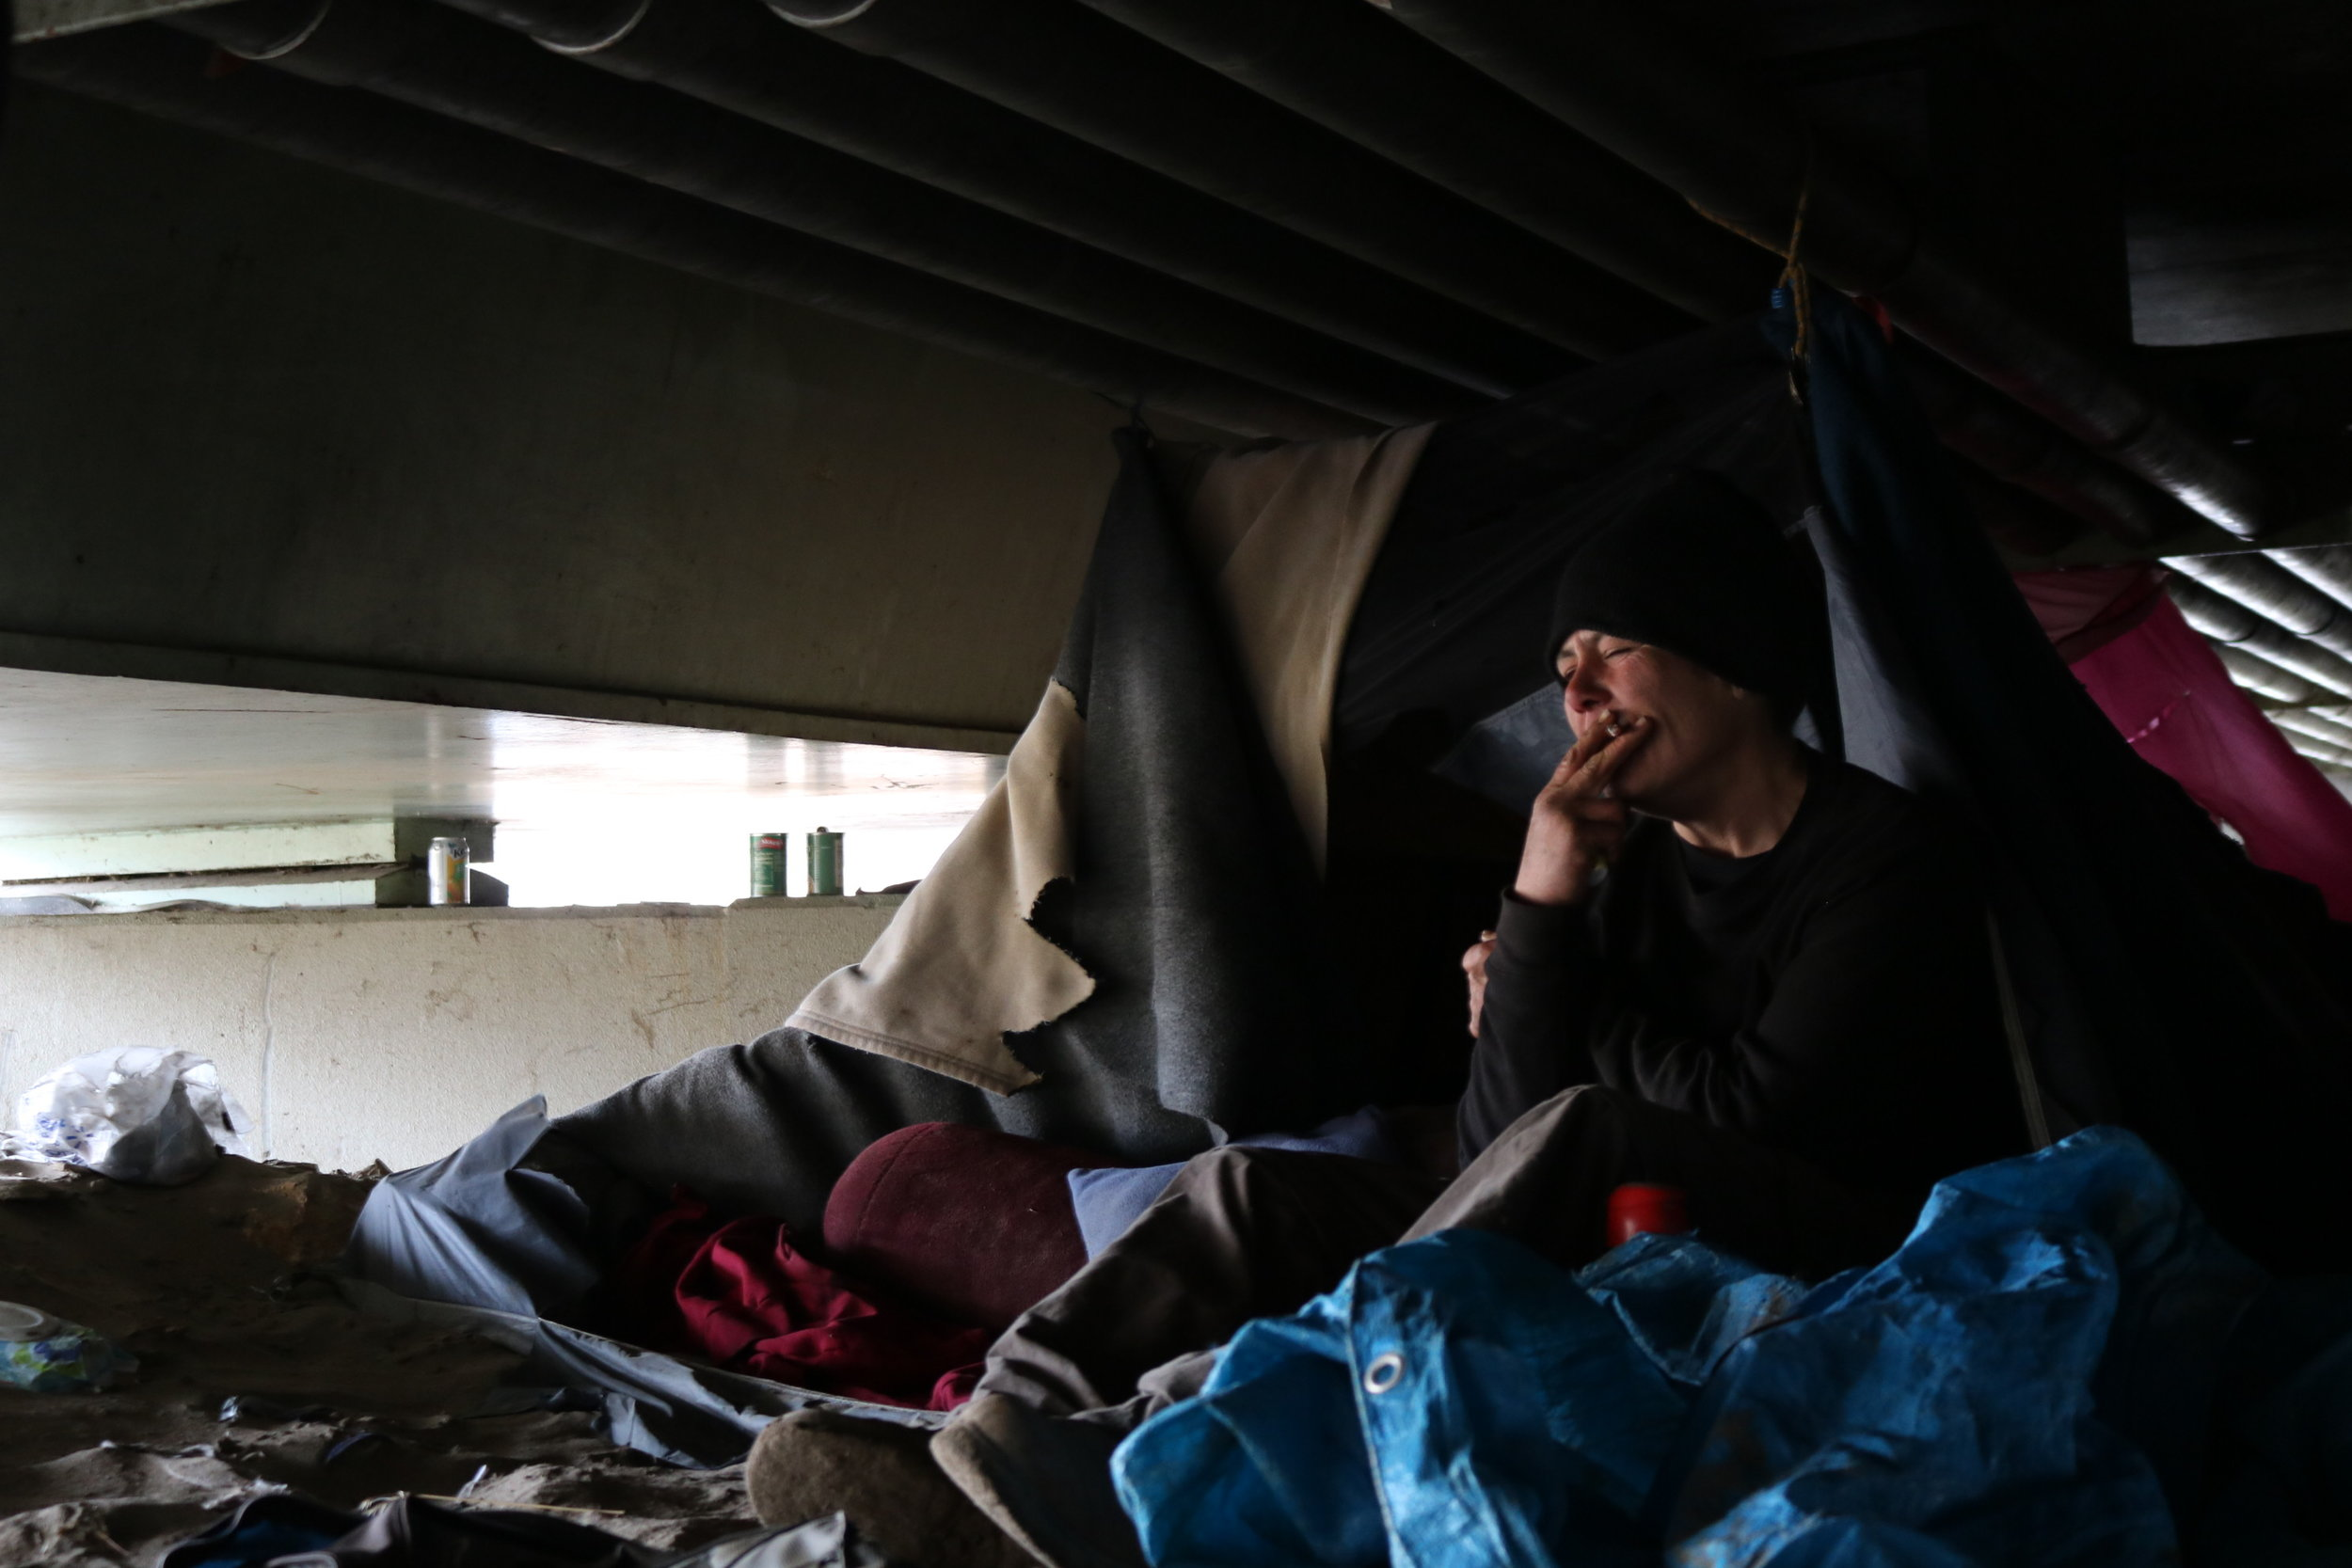 """For thos  e who make their home here, coming back to their belongings has been disheartening. If their camp sites are still somewhat intact, everything is soaked. """"It was all wet,""""Catherine Clark said. """"Everything that I had there that was dry, even the tent, is wet. Inside and out."""""""